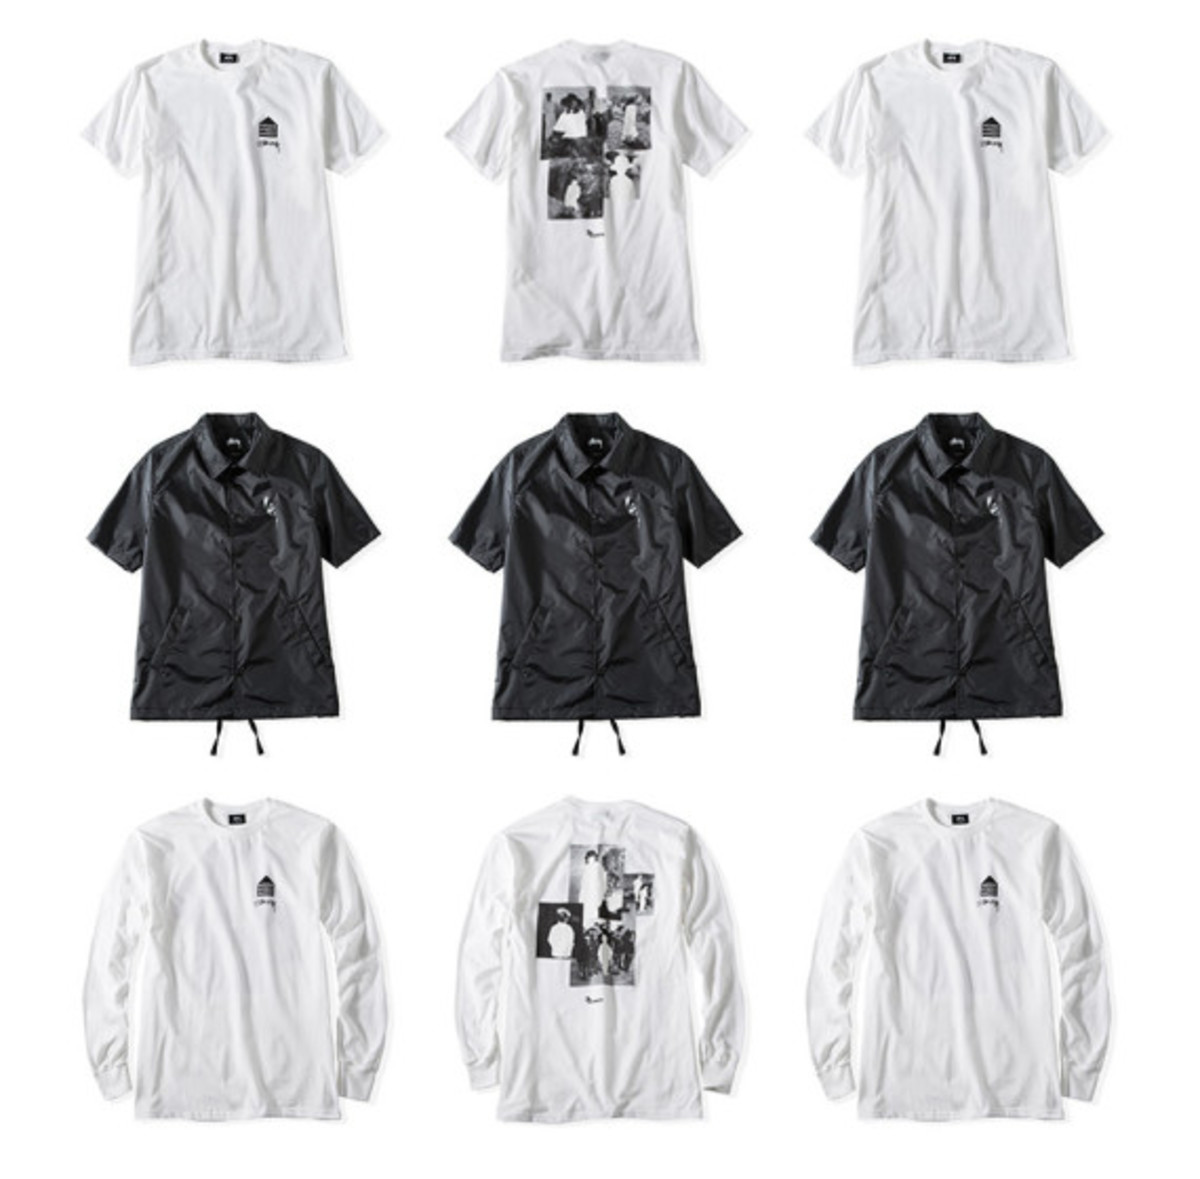 dover-street-market-new-york-stussy-capsule-collection-03